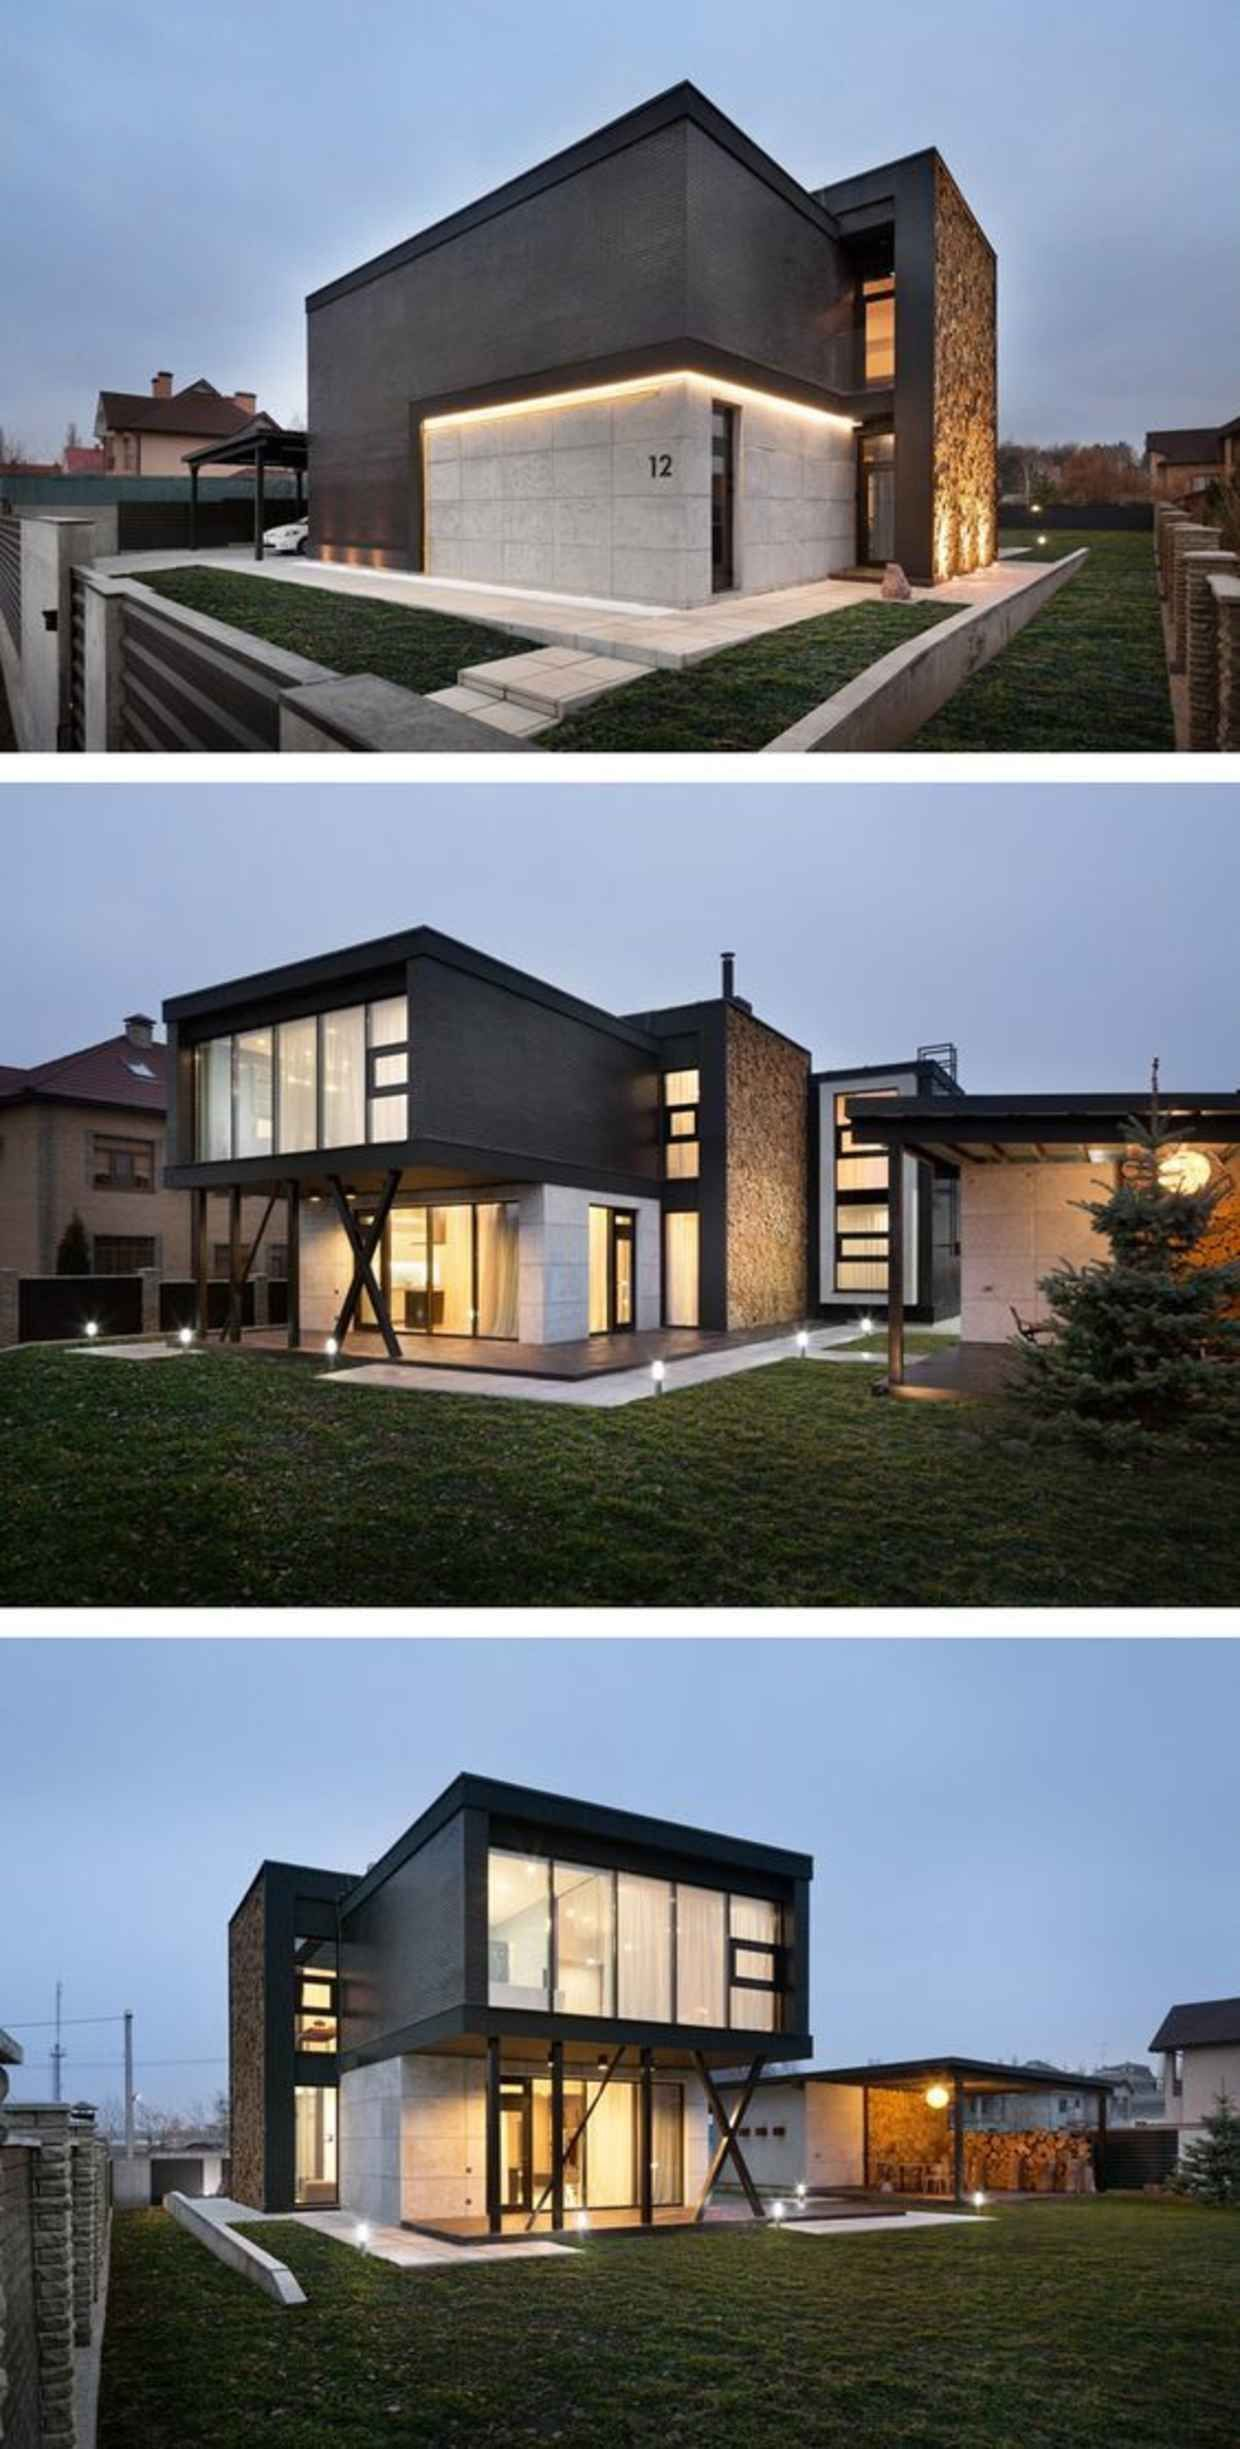 Most Expensive Modern House In the World 2021 | Desain ...